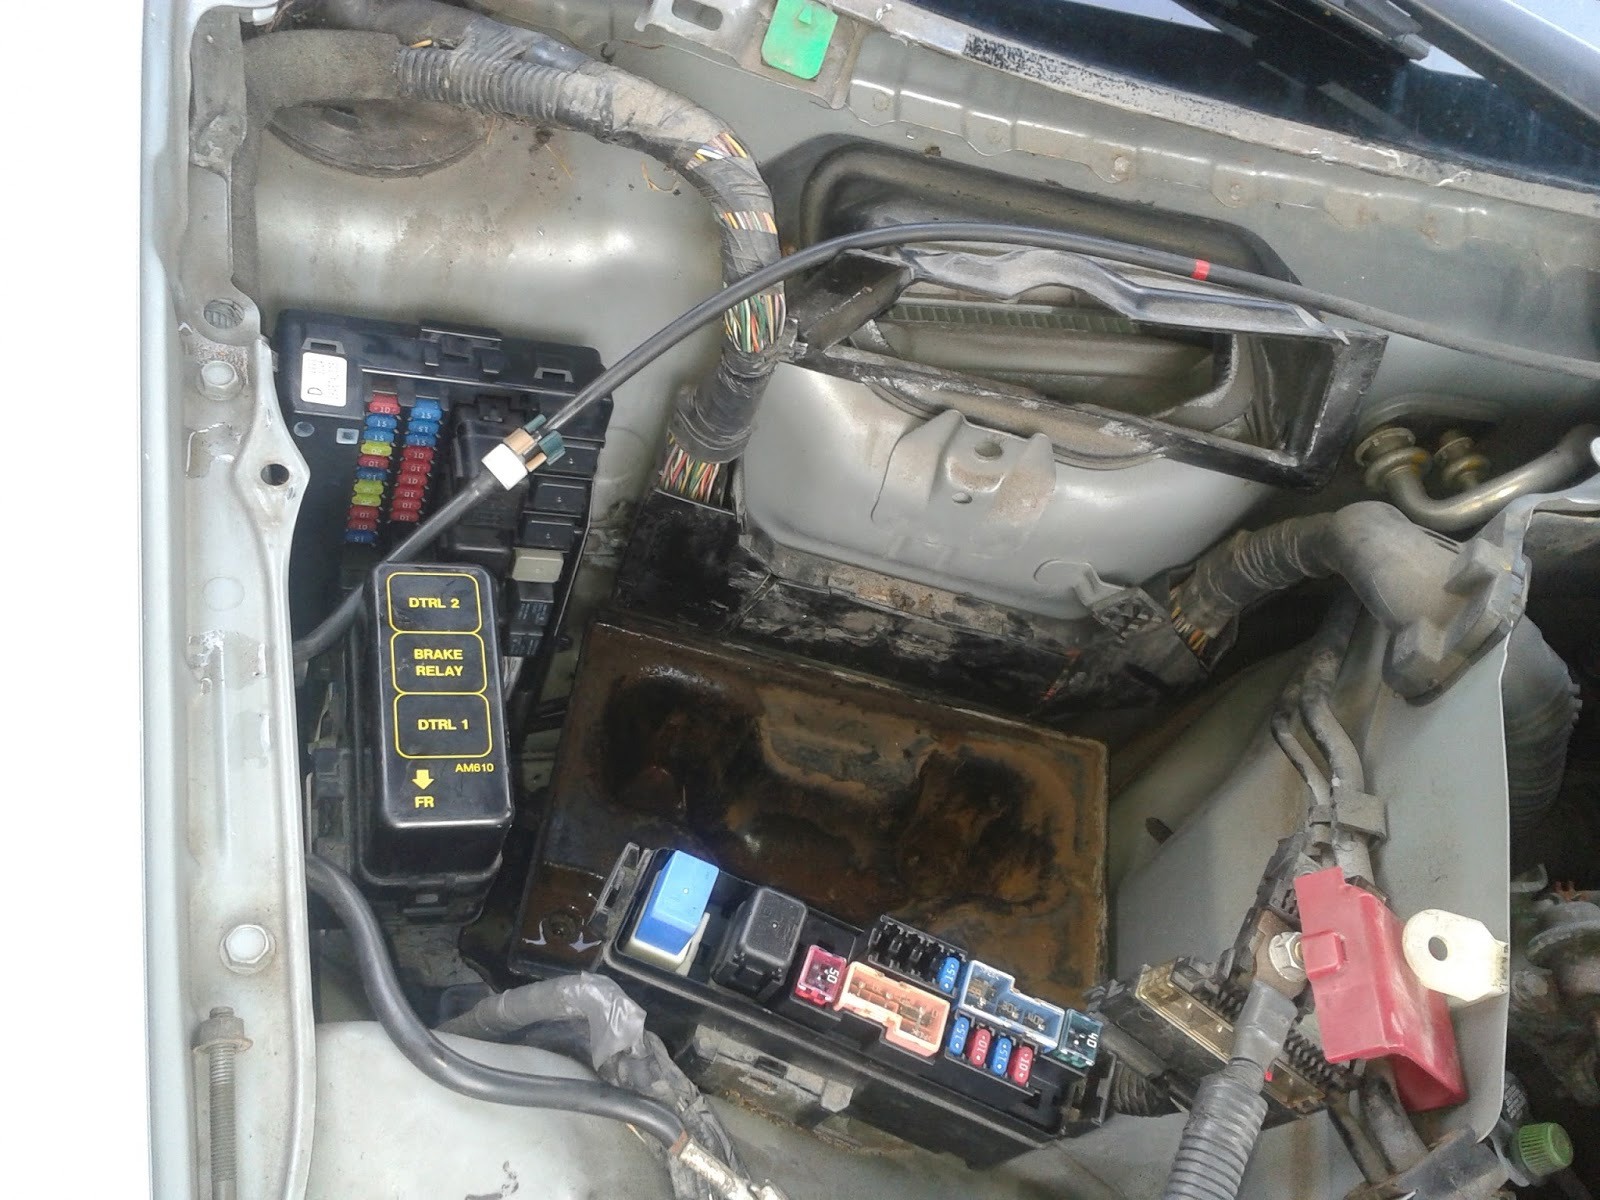 2015 05 27%2B18.55.50 zf inifiniti g35 2003 wet ipdm issue, how to fix it infiniti g35 fuse box layout at soozxer.org